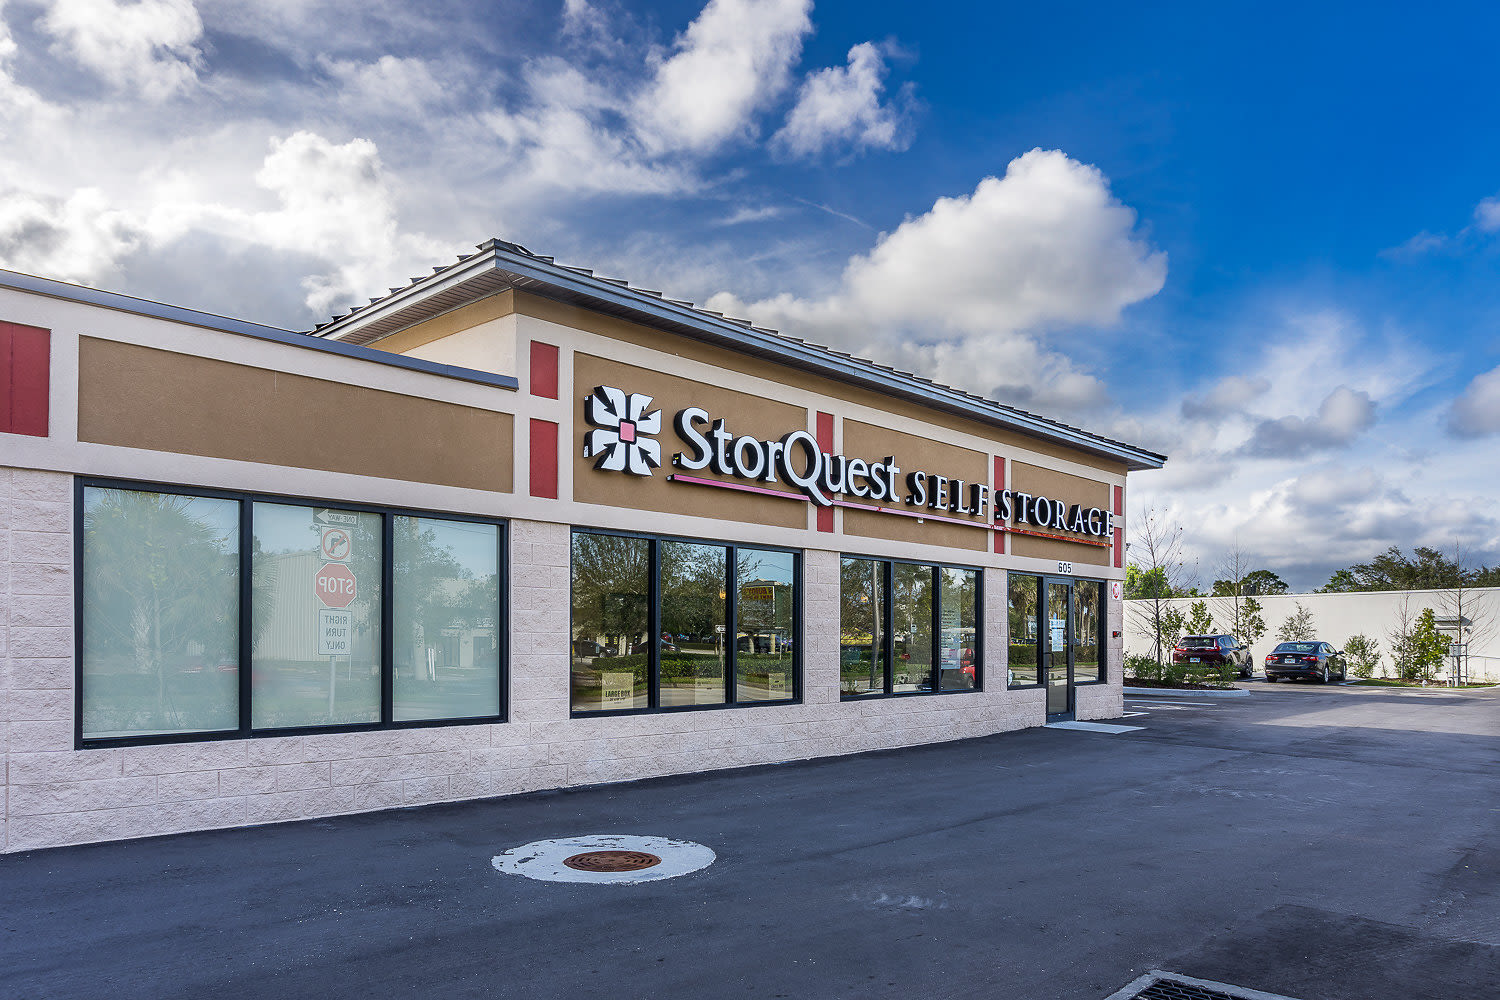 Store front at StorQuest Self Storage in St Cloud, FL